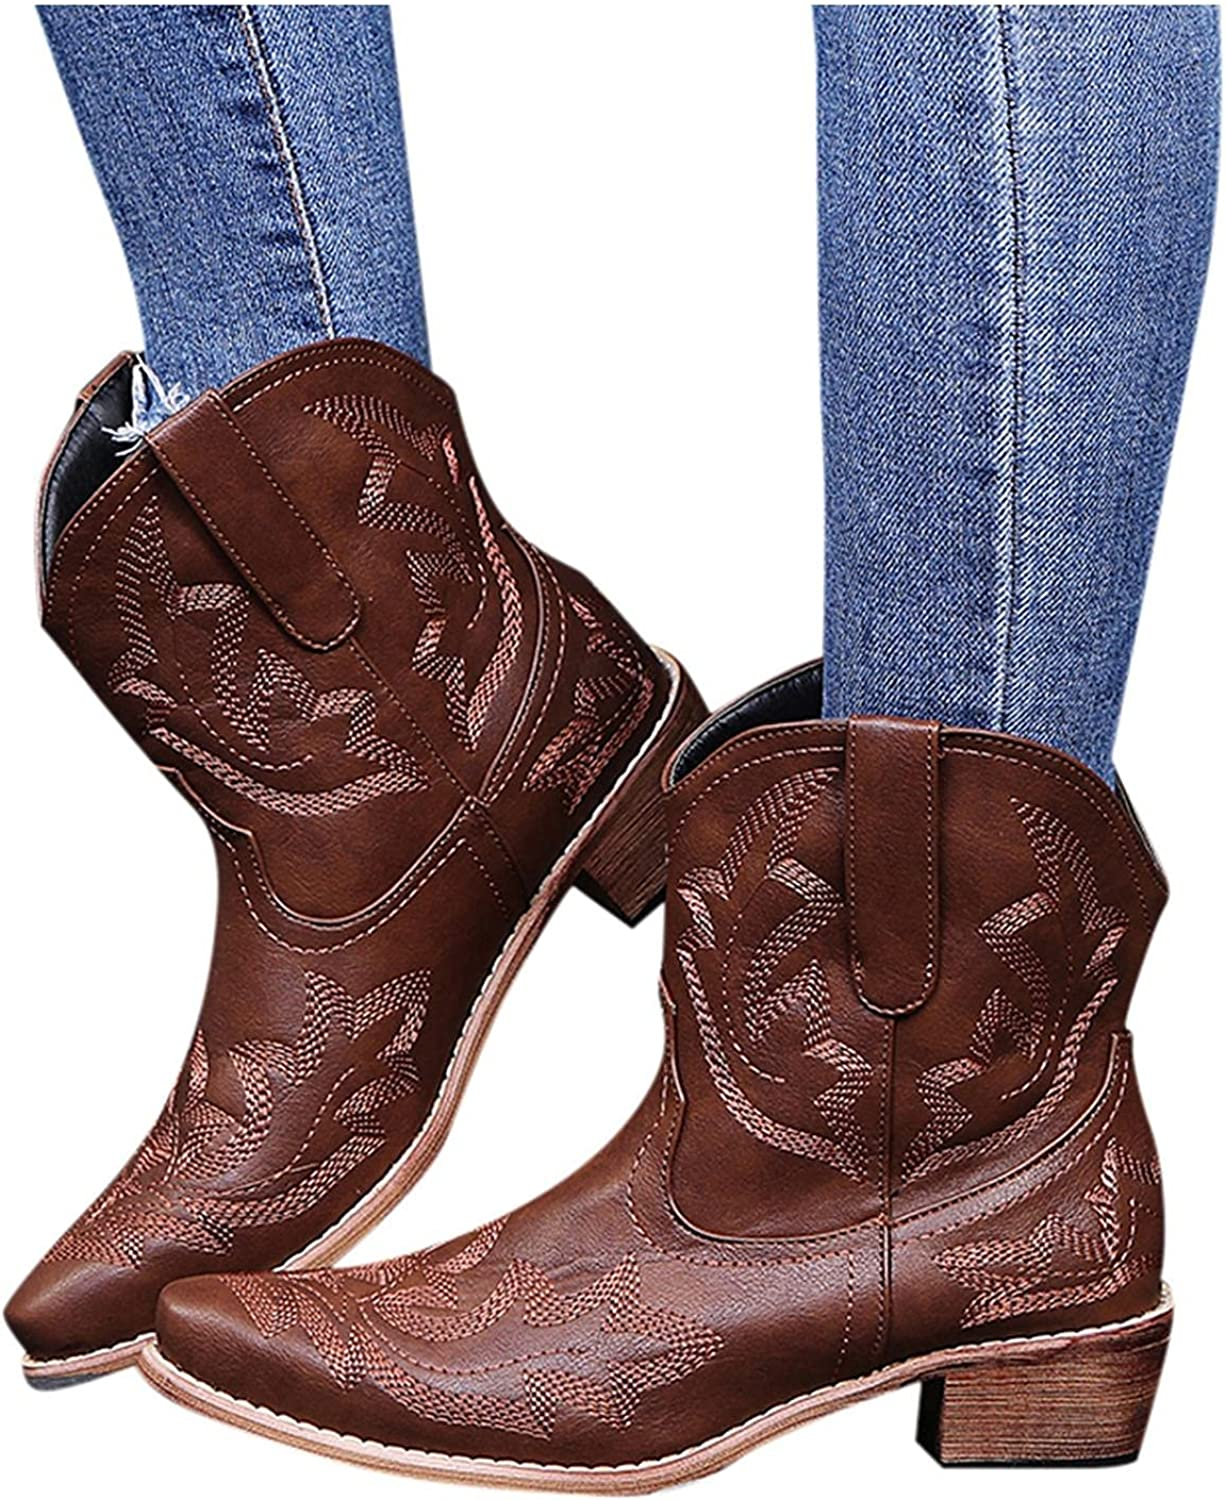 Zieglen Women's Winter Boots, Women's Boots with Stacked Heel Ankle Cowboy Booties Western Boots Snow Boots Motorcycle Boots